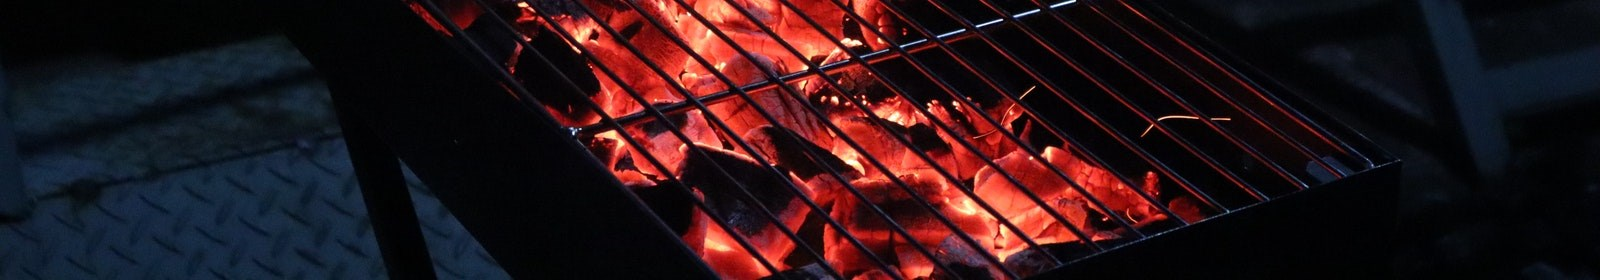 The Coolest Braai Area Ideas for Your Home